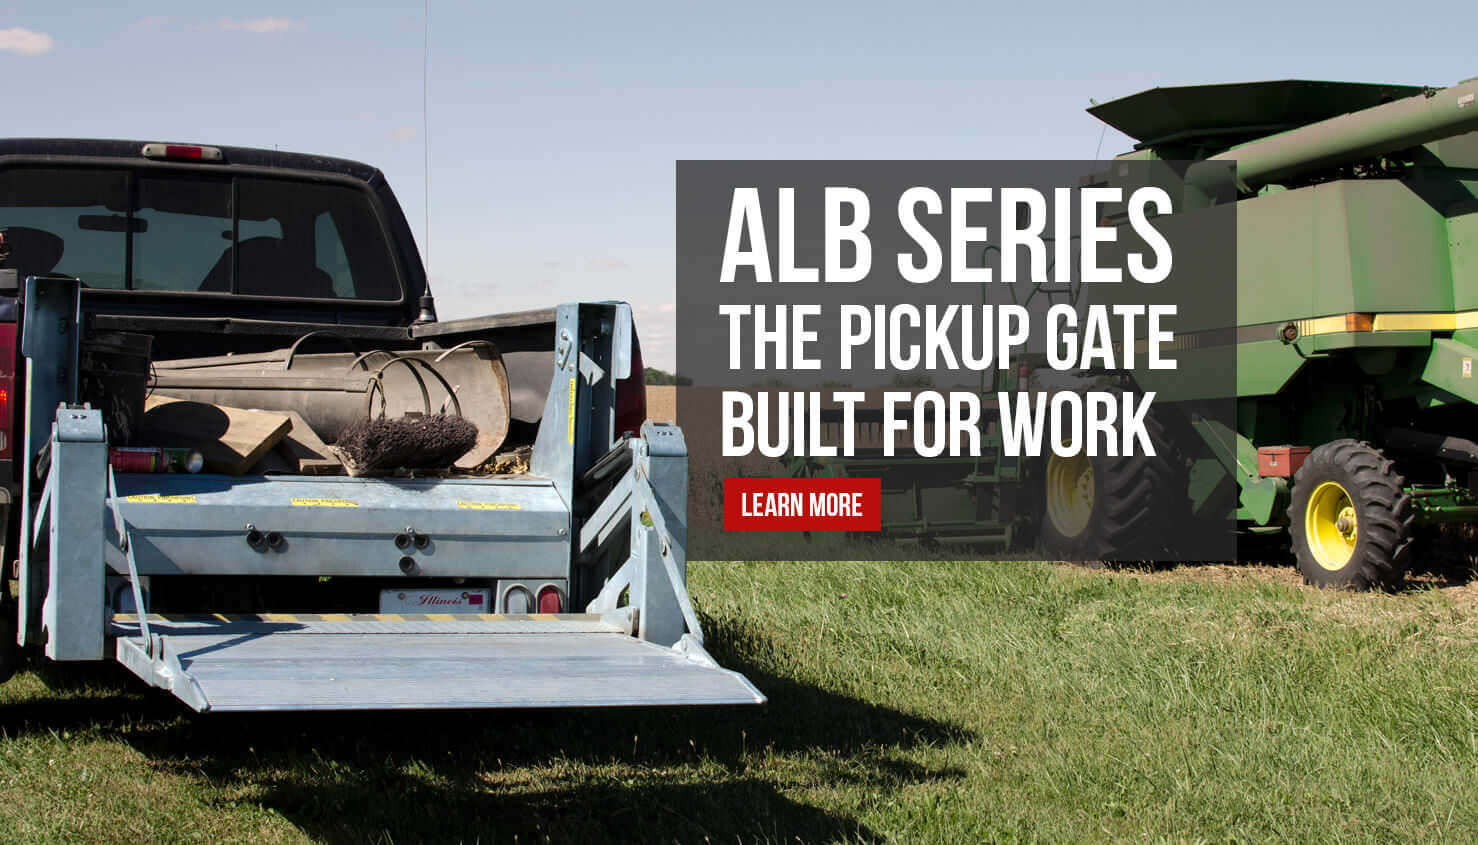 Check out the our ALB series lifts for trucks